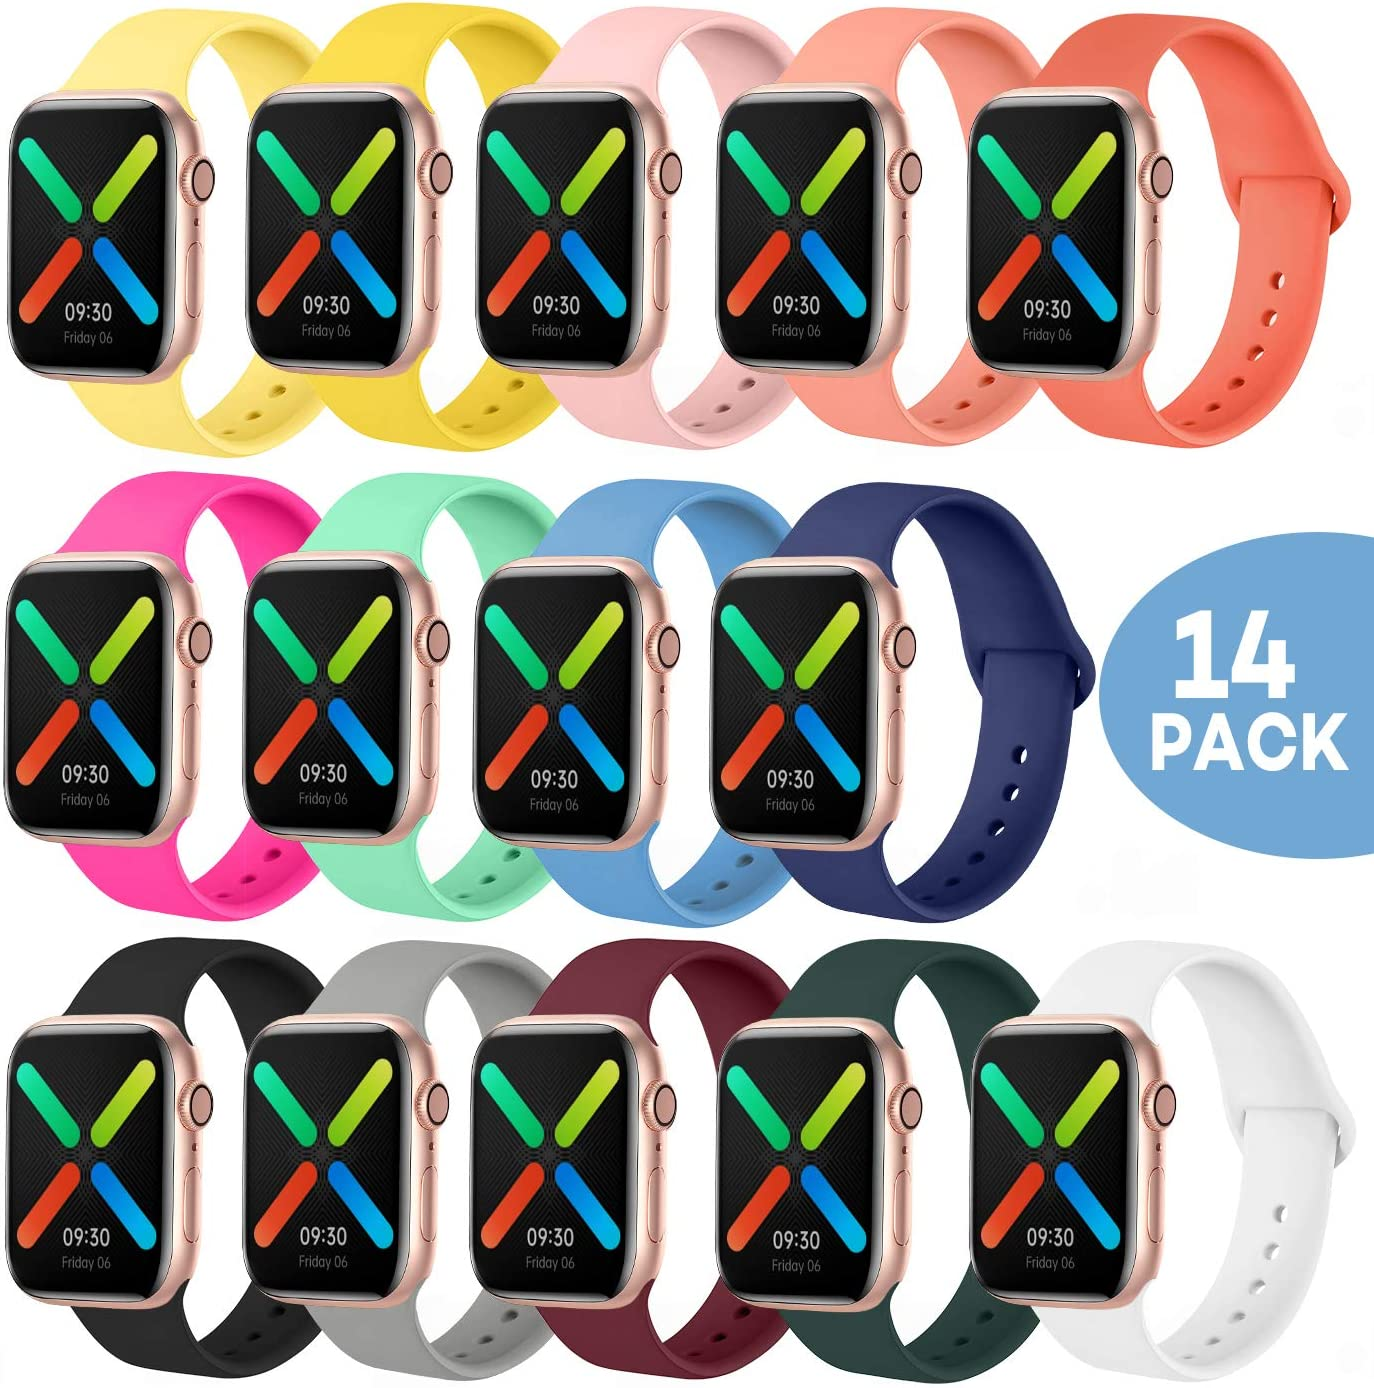 Smartwatch Bands Compatible with Apple Watch Band 40mm 38mm 44mm 42mm, SWHAS Soft Silicone Sport Band Replacement Wristband for iWatch Series 5/4/3/2/1